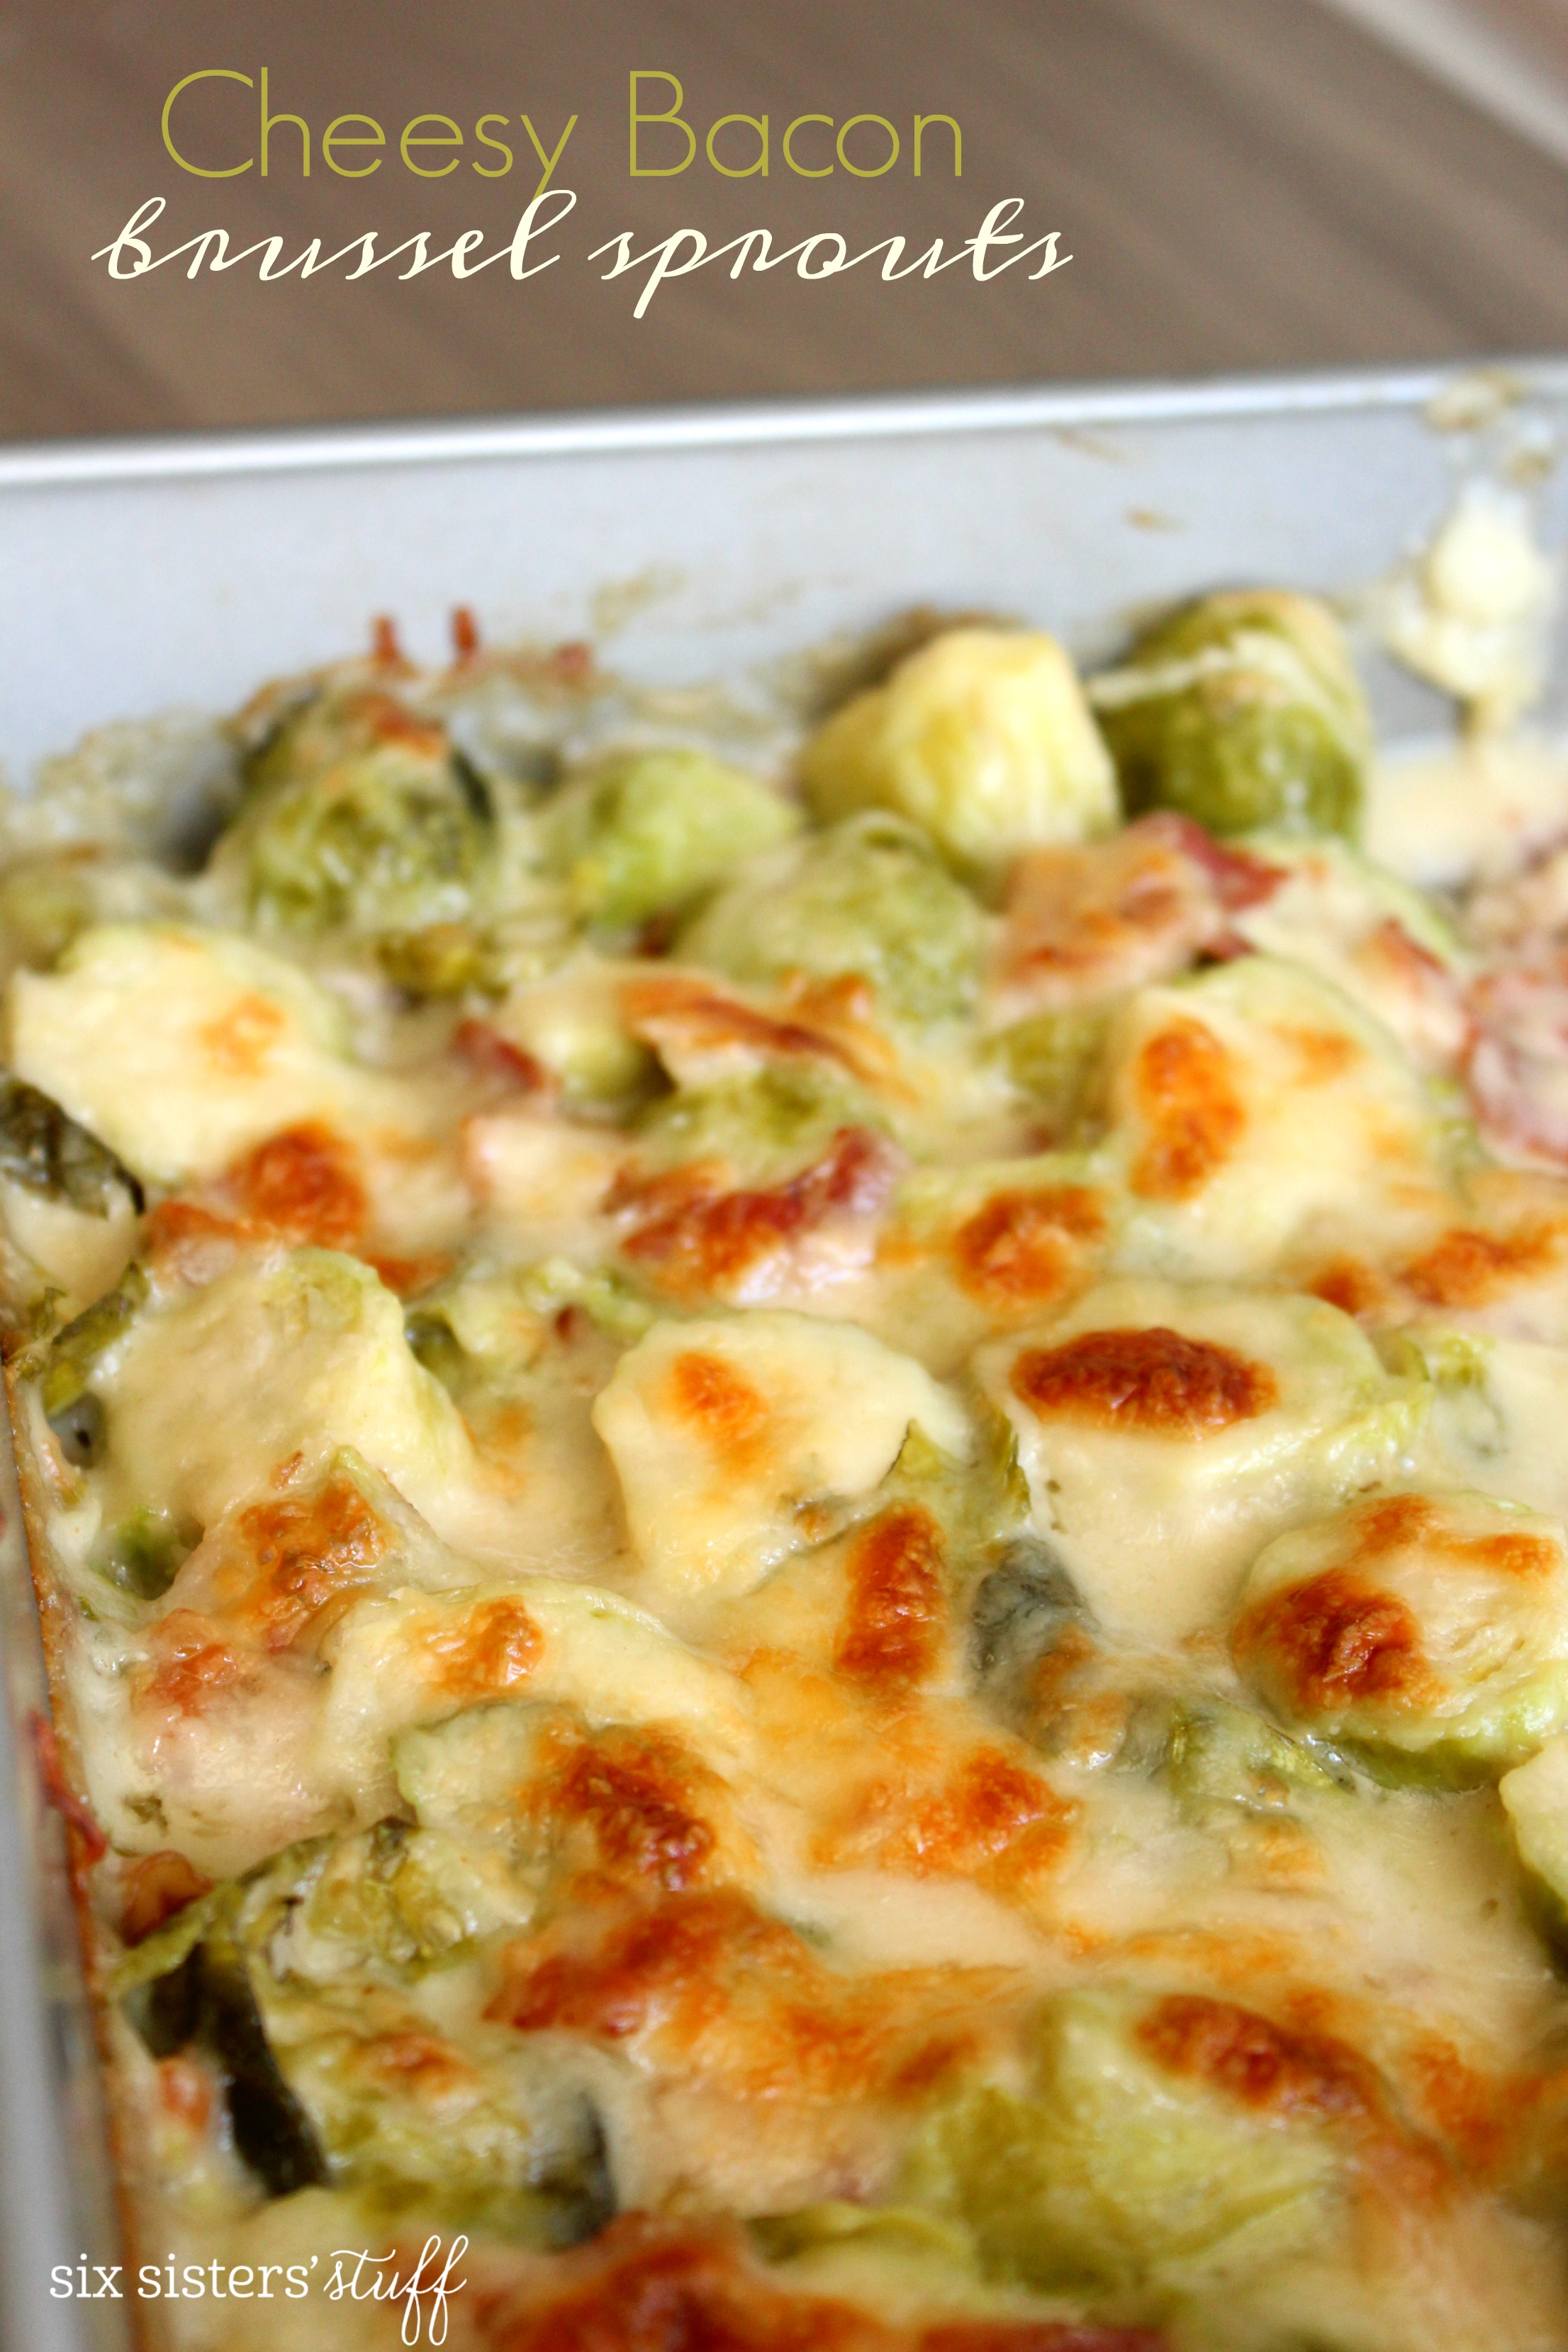 Cheesy Bacon Brussel Sprouts Recipe